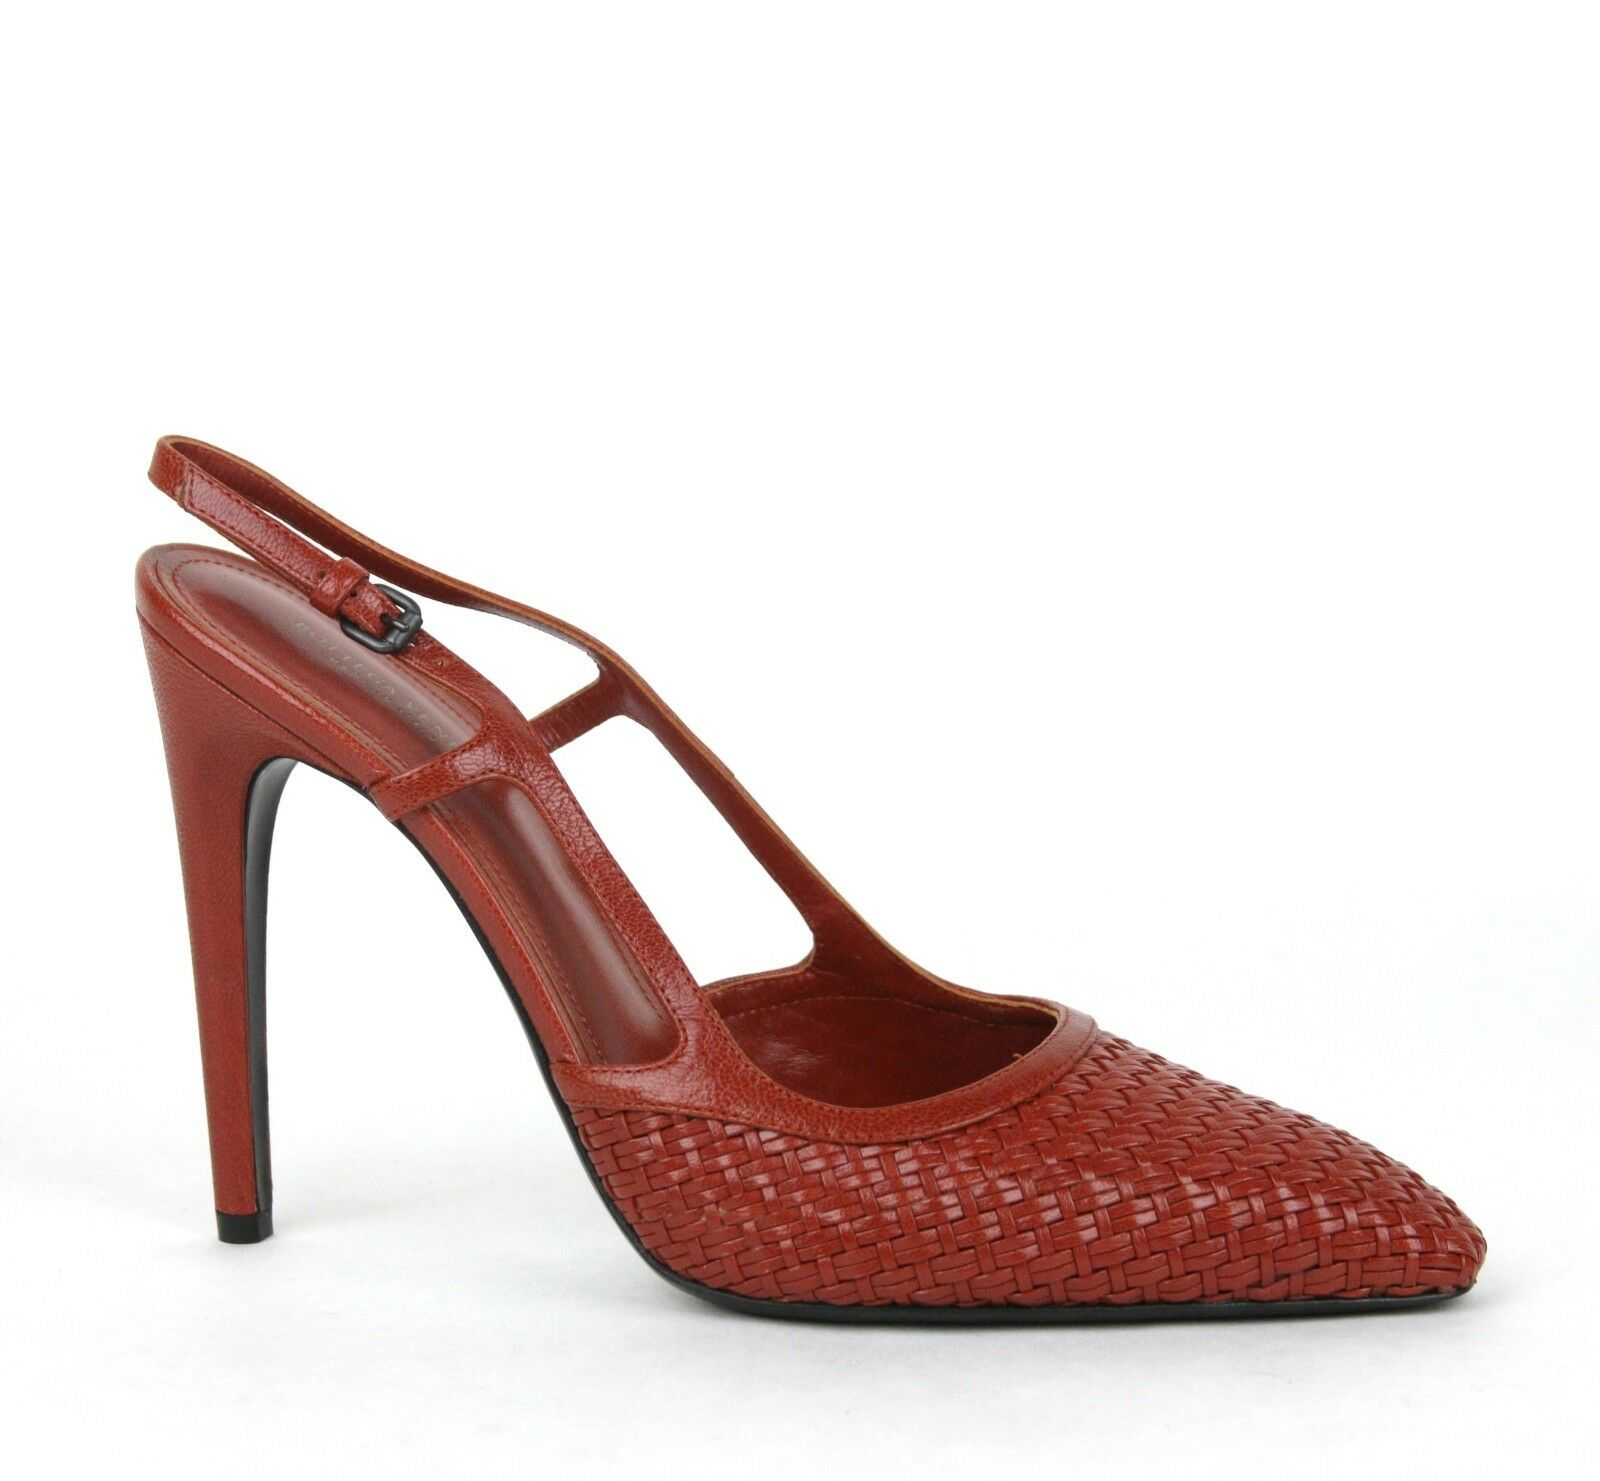 840 New Bottega Veneta Woven Leather Slingback Heel Sandal Red 347044 6329